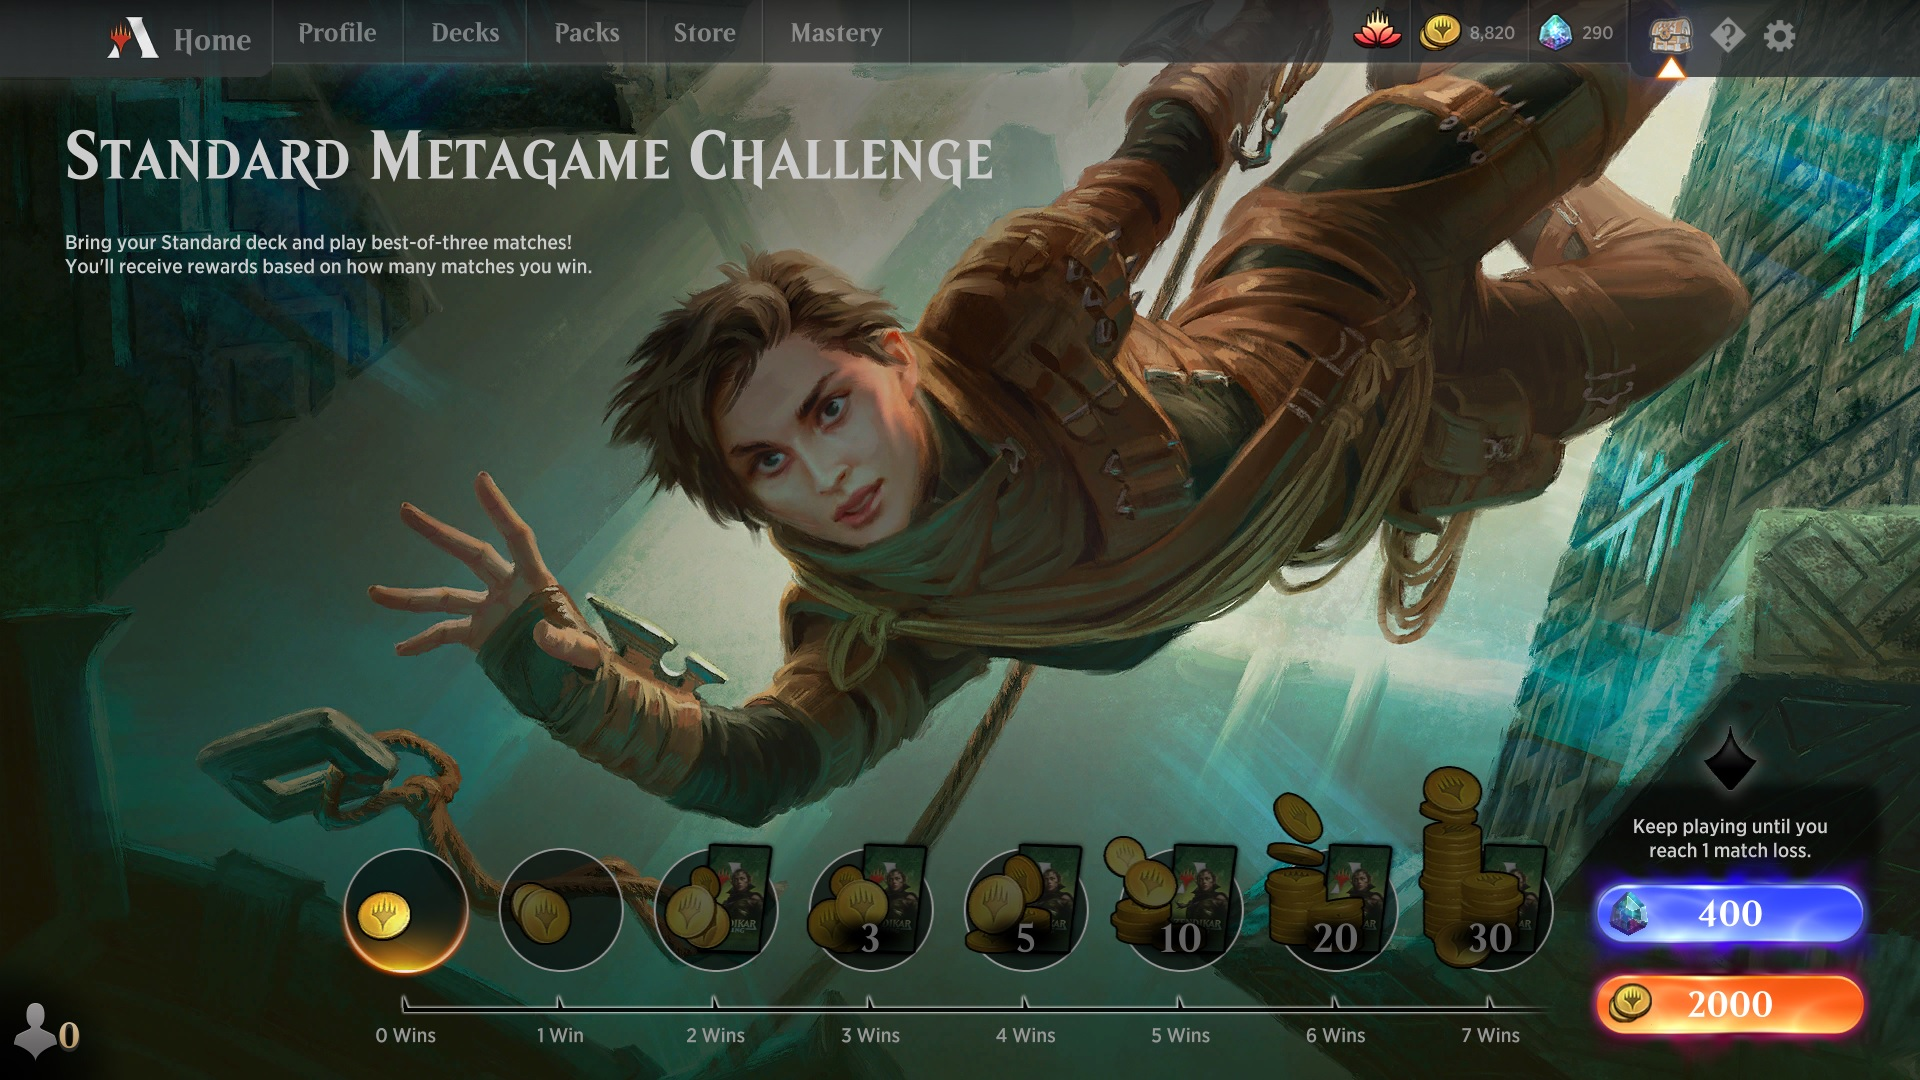 Standard Metagame Challenge - September 2020